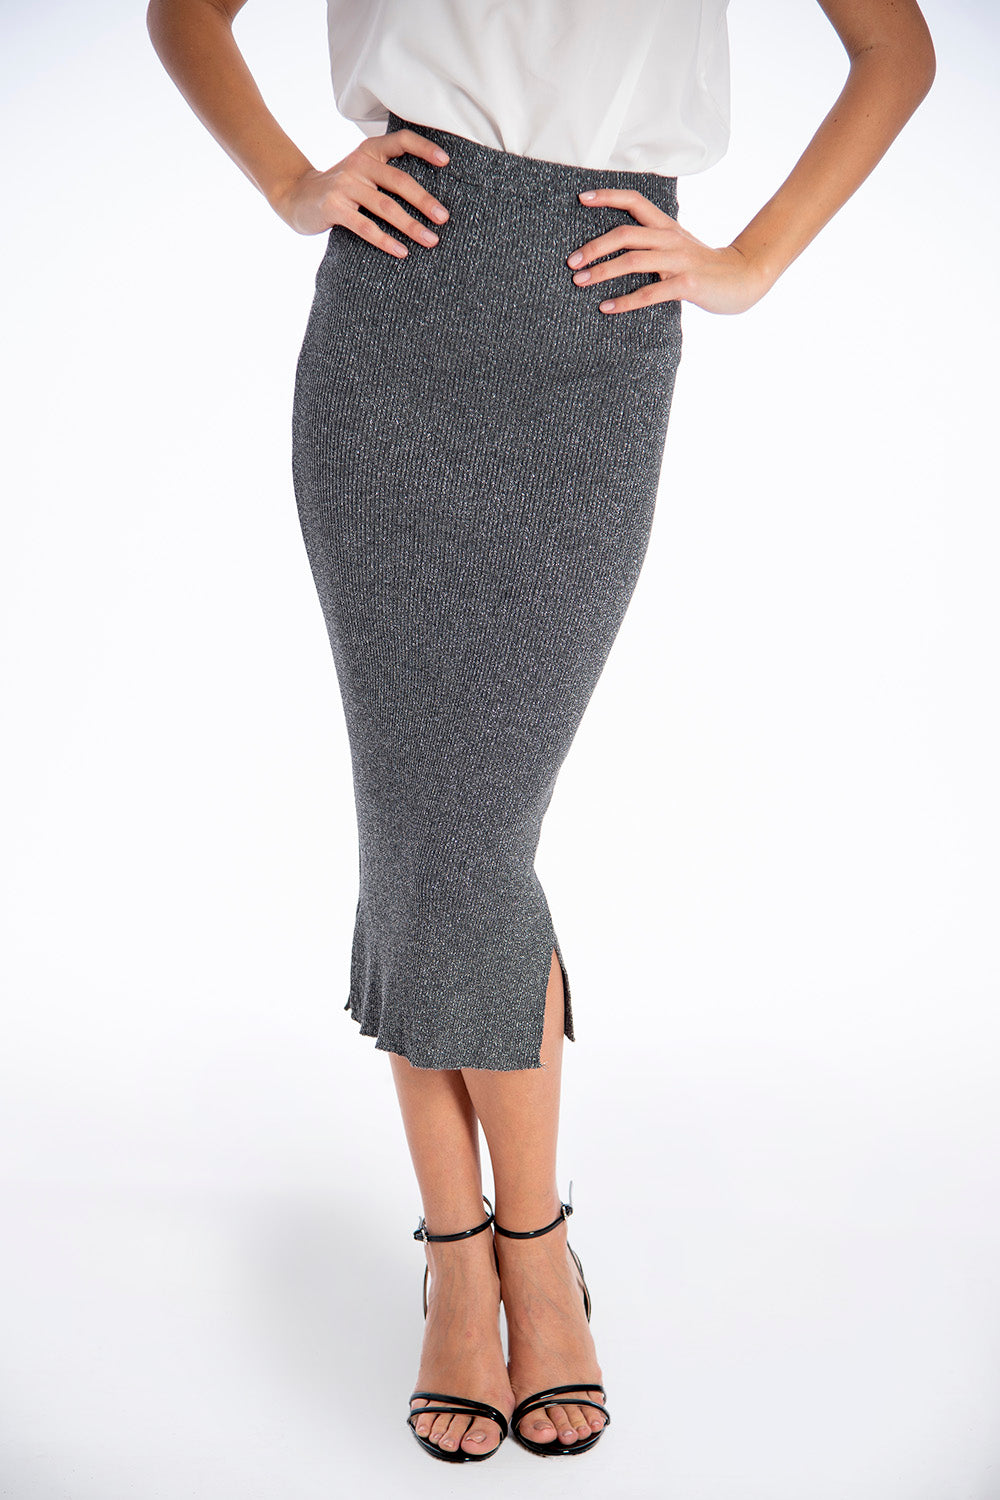 Infinity Knitwear knitted midi skirt with side split